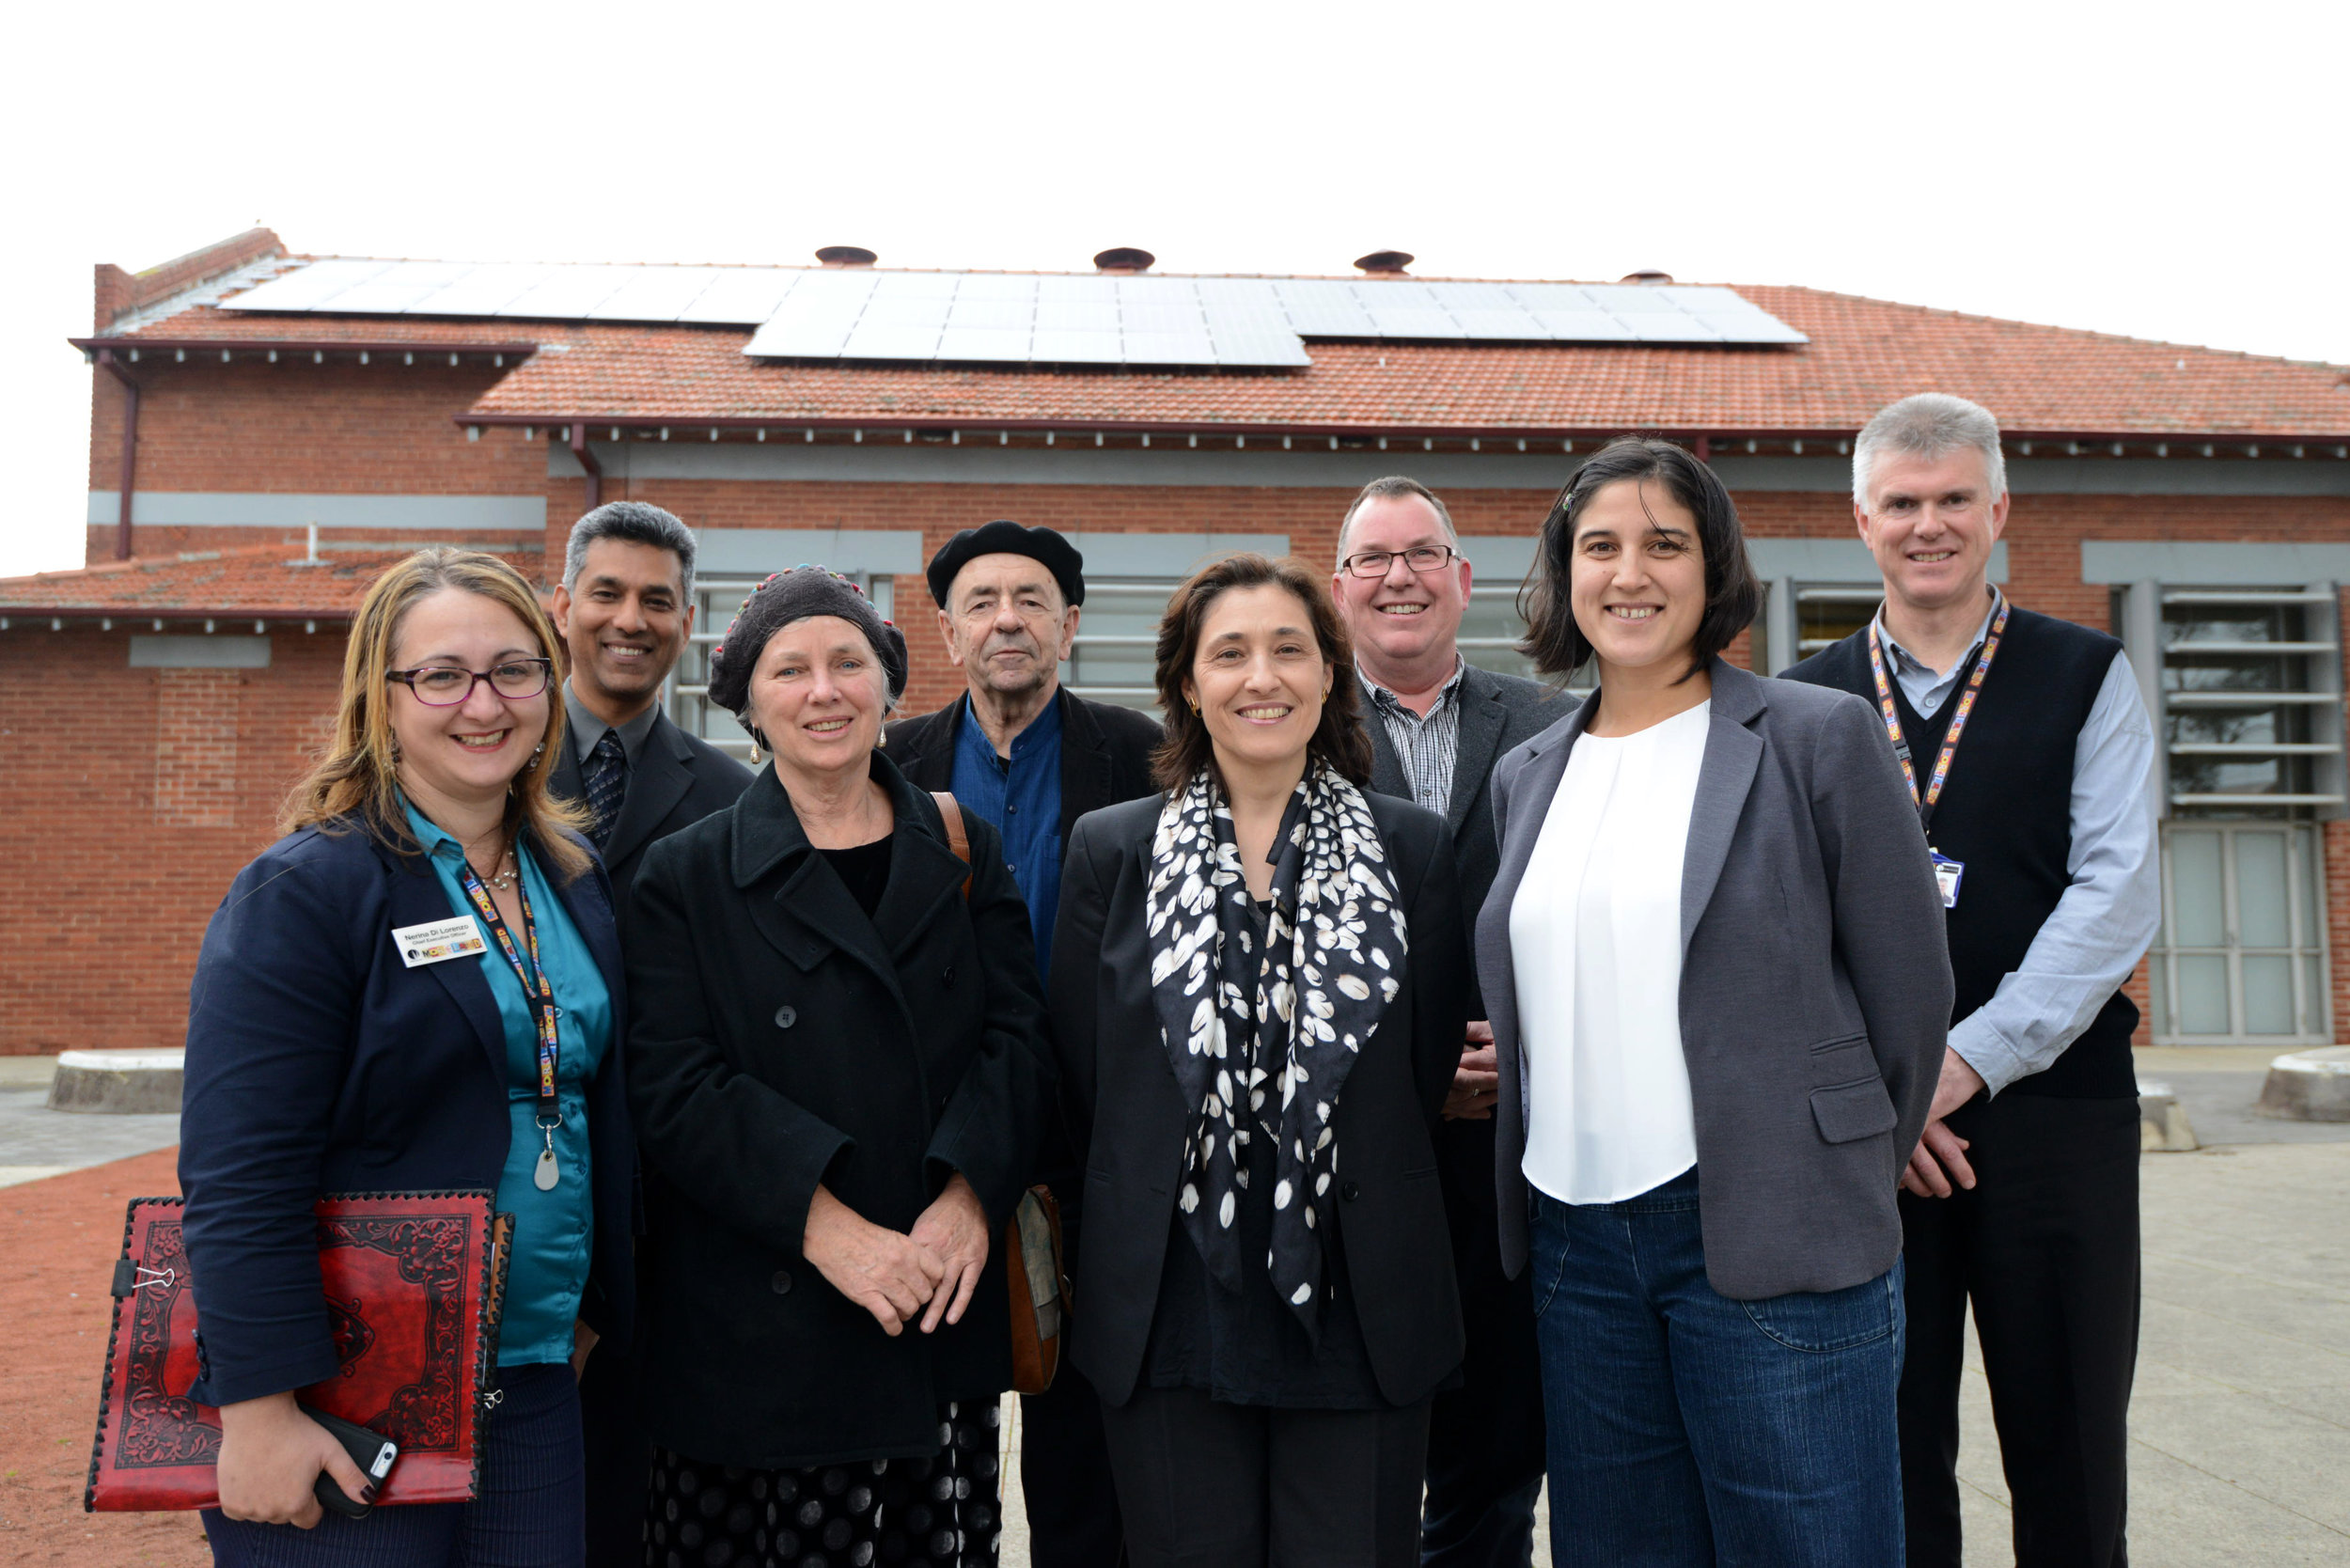 The Hon. Lily D'Ambrosio MP standing outside the Moreland Civic Centre, Coburg with part of the 130kWp array in the background.